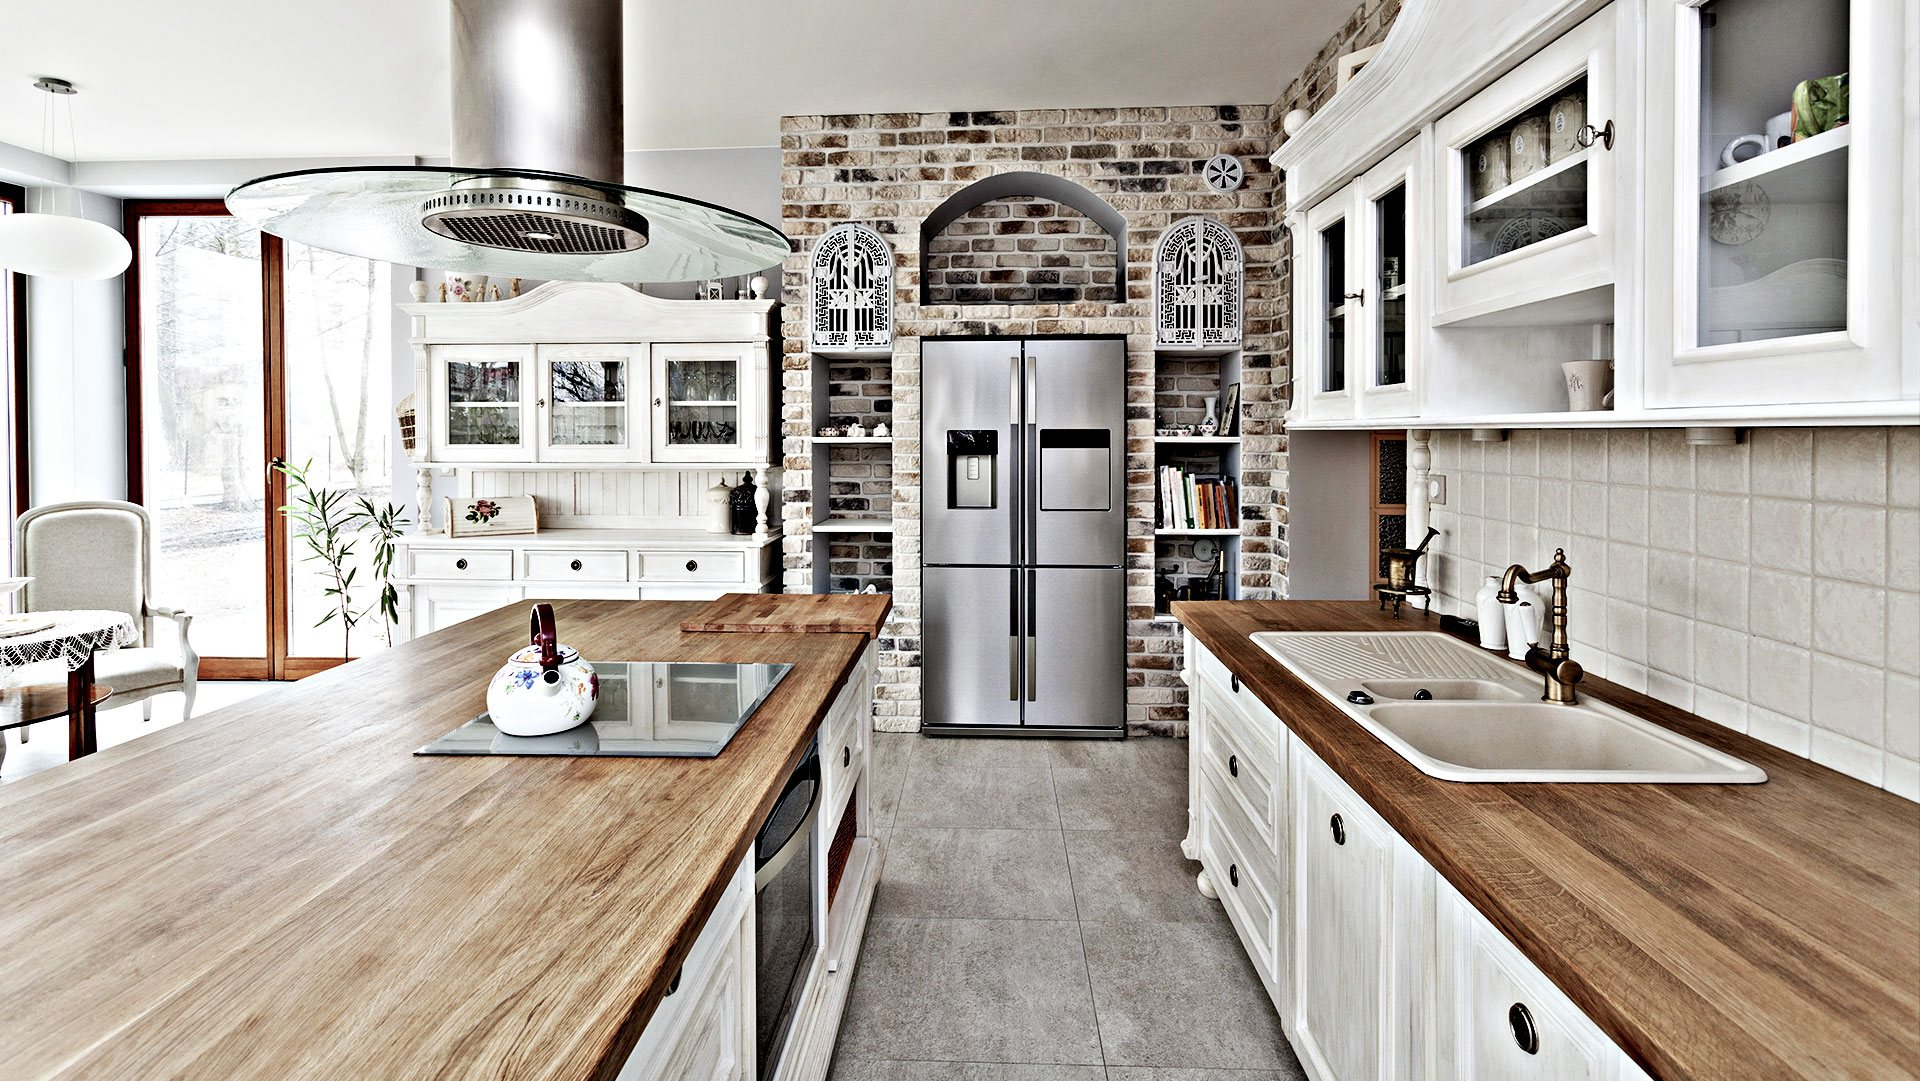 Epic Home Improvements Inc. Remodeled Kitchen 1